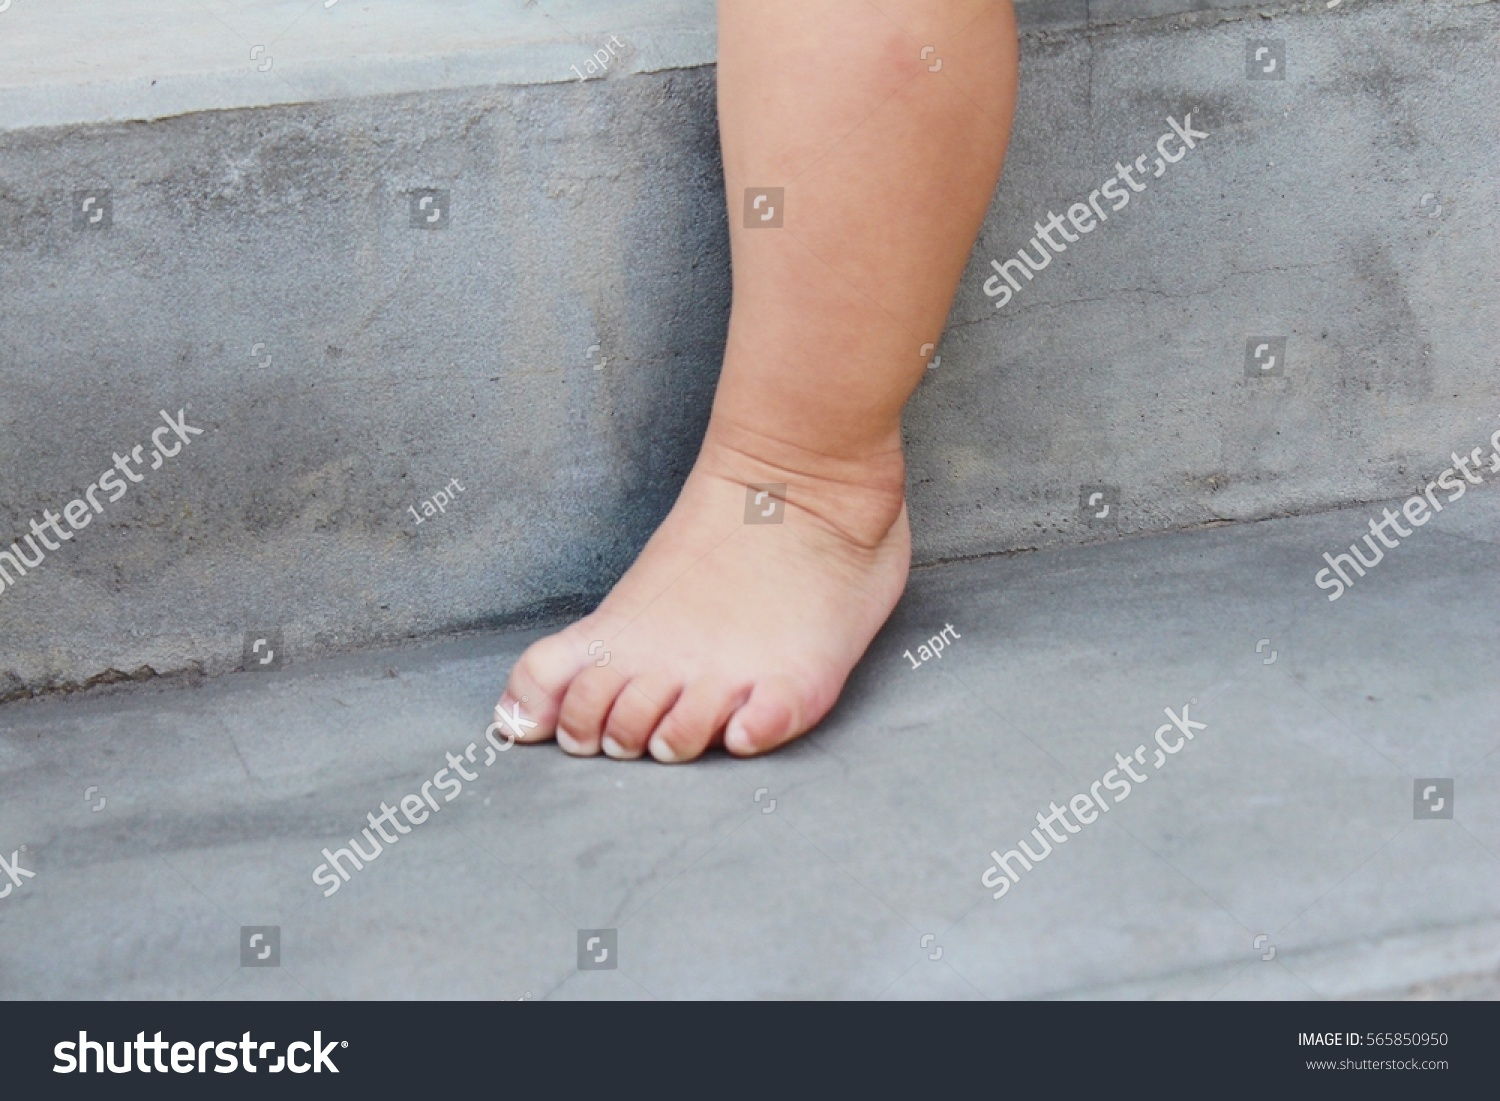 asian feet child aged 1 year stock photo (edit now) 565850950